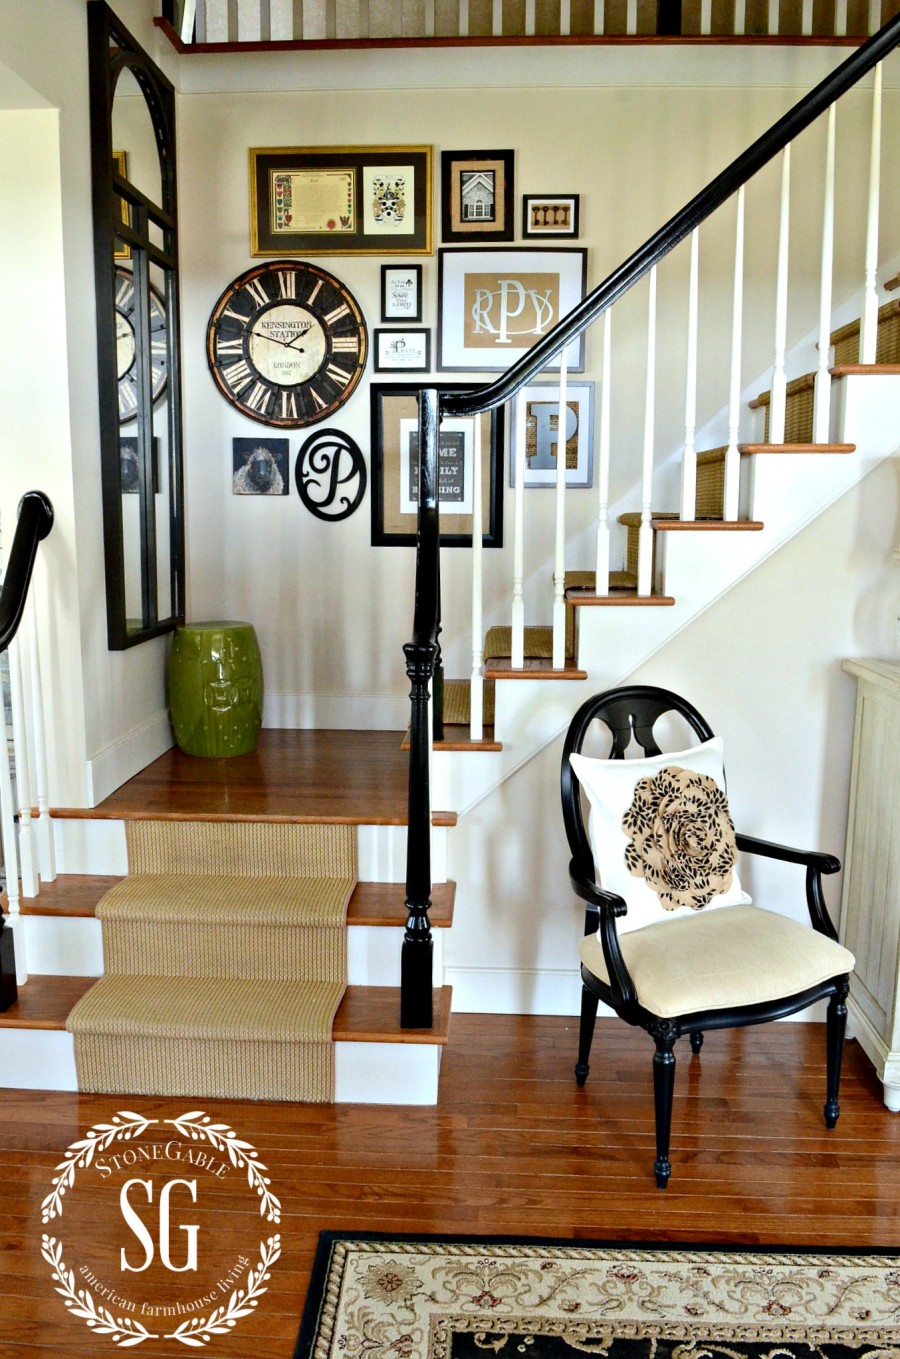 ADDING A CLOCK TO WALL ART GALLERY-clock in foyer-neutrals and black-stonegableblog.com